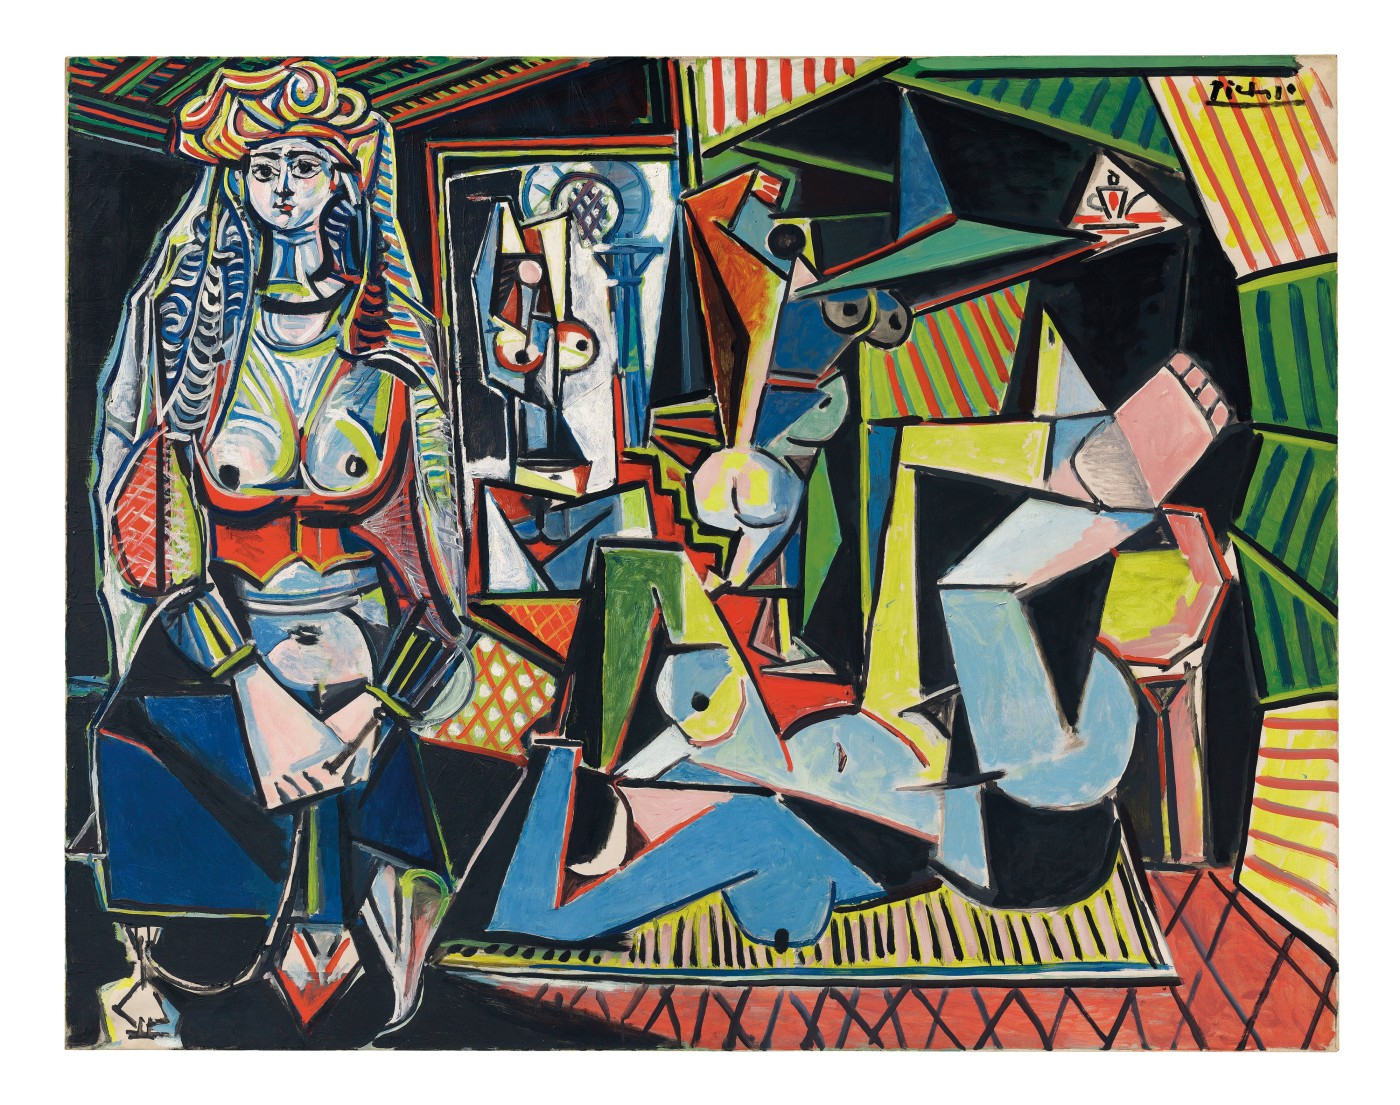 Painting of Picasso's Femmes-Dalger